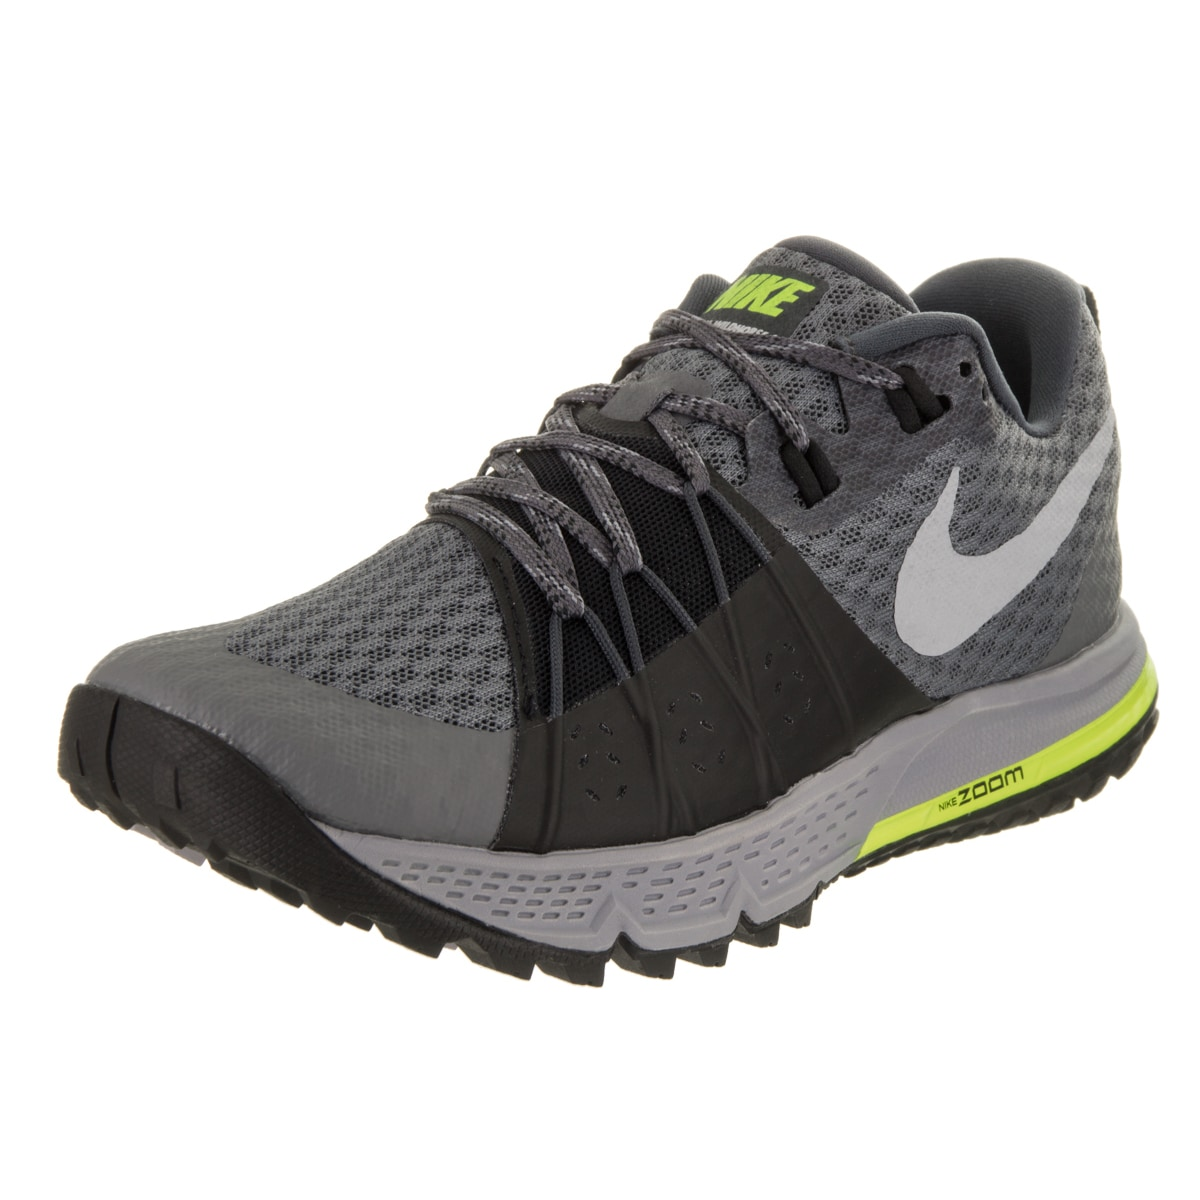 Nike Women's Air Zoom Wildhorse 4 Running Shoe (6.5), Gre...